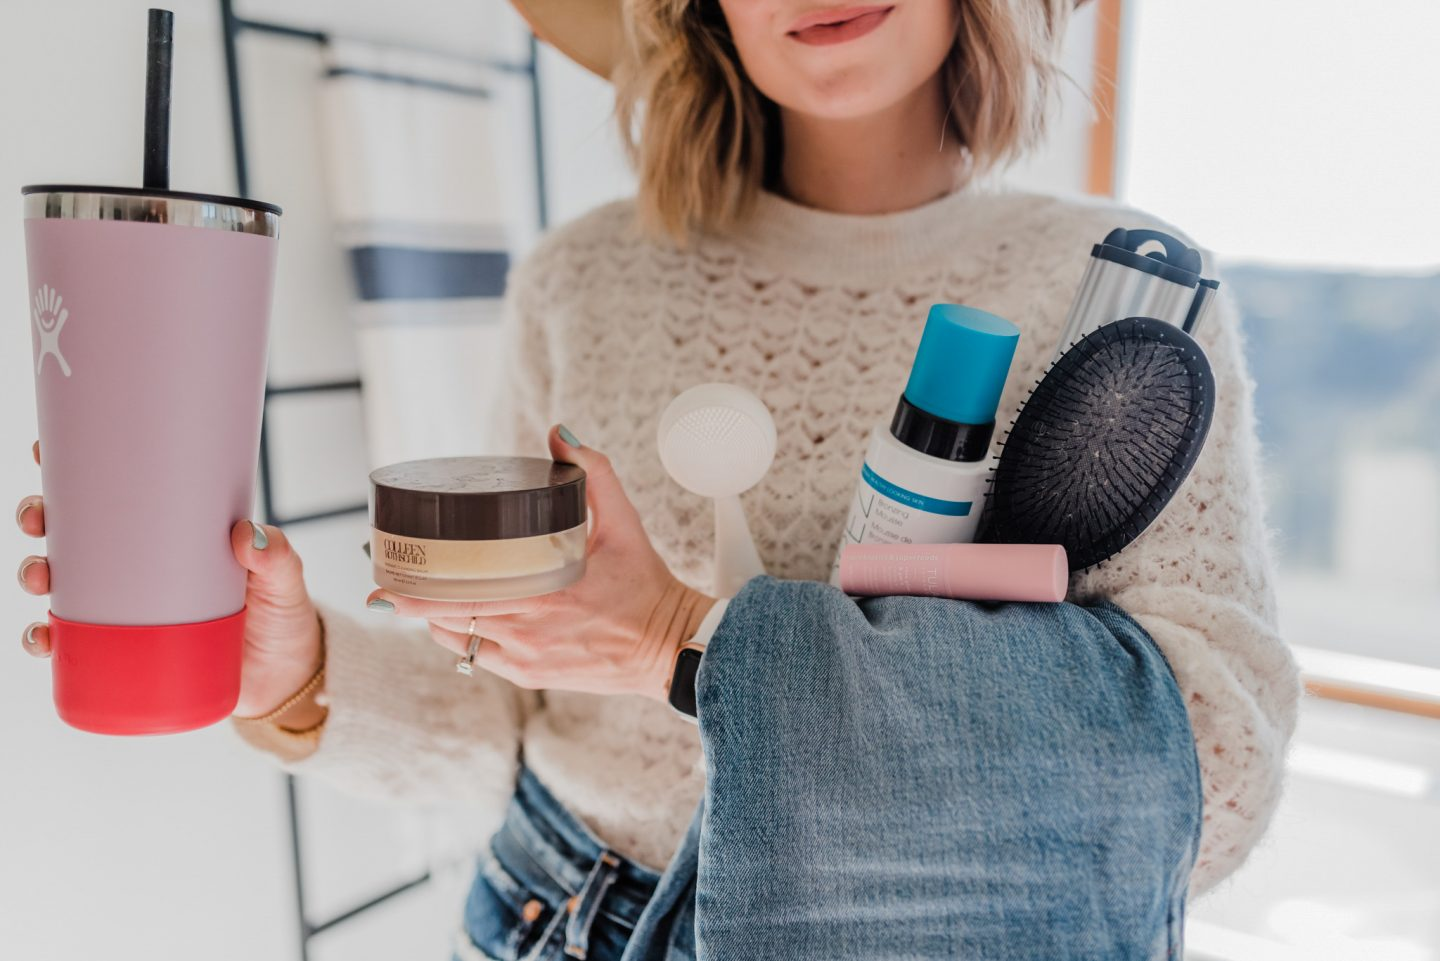 best 2019 purchases featured by top San Diego life and style blog, Navy Grace. | 2019 Favorite Products by popular San Diego life and style blog, Navy Grace: image of a woman standing in her bathroom and holding a drink tumbler, colleen rothschild facial product, hair brush, jeans, and St. Tropez self tanner.